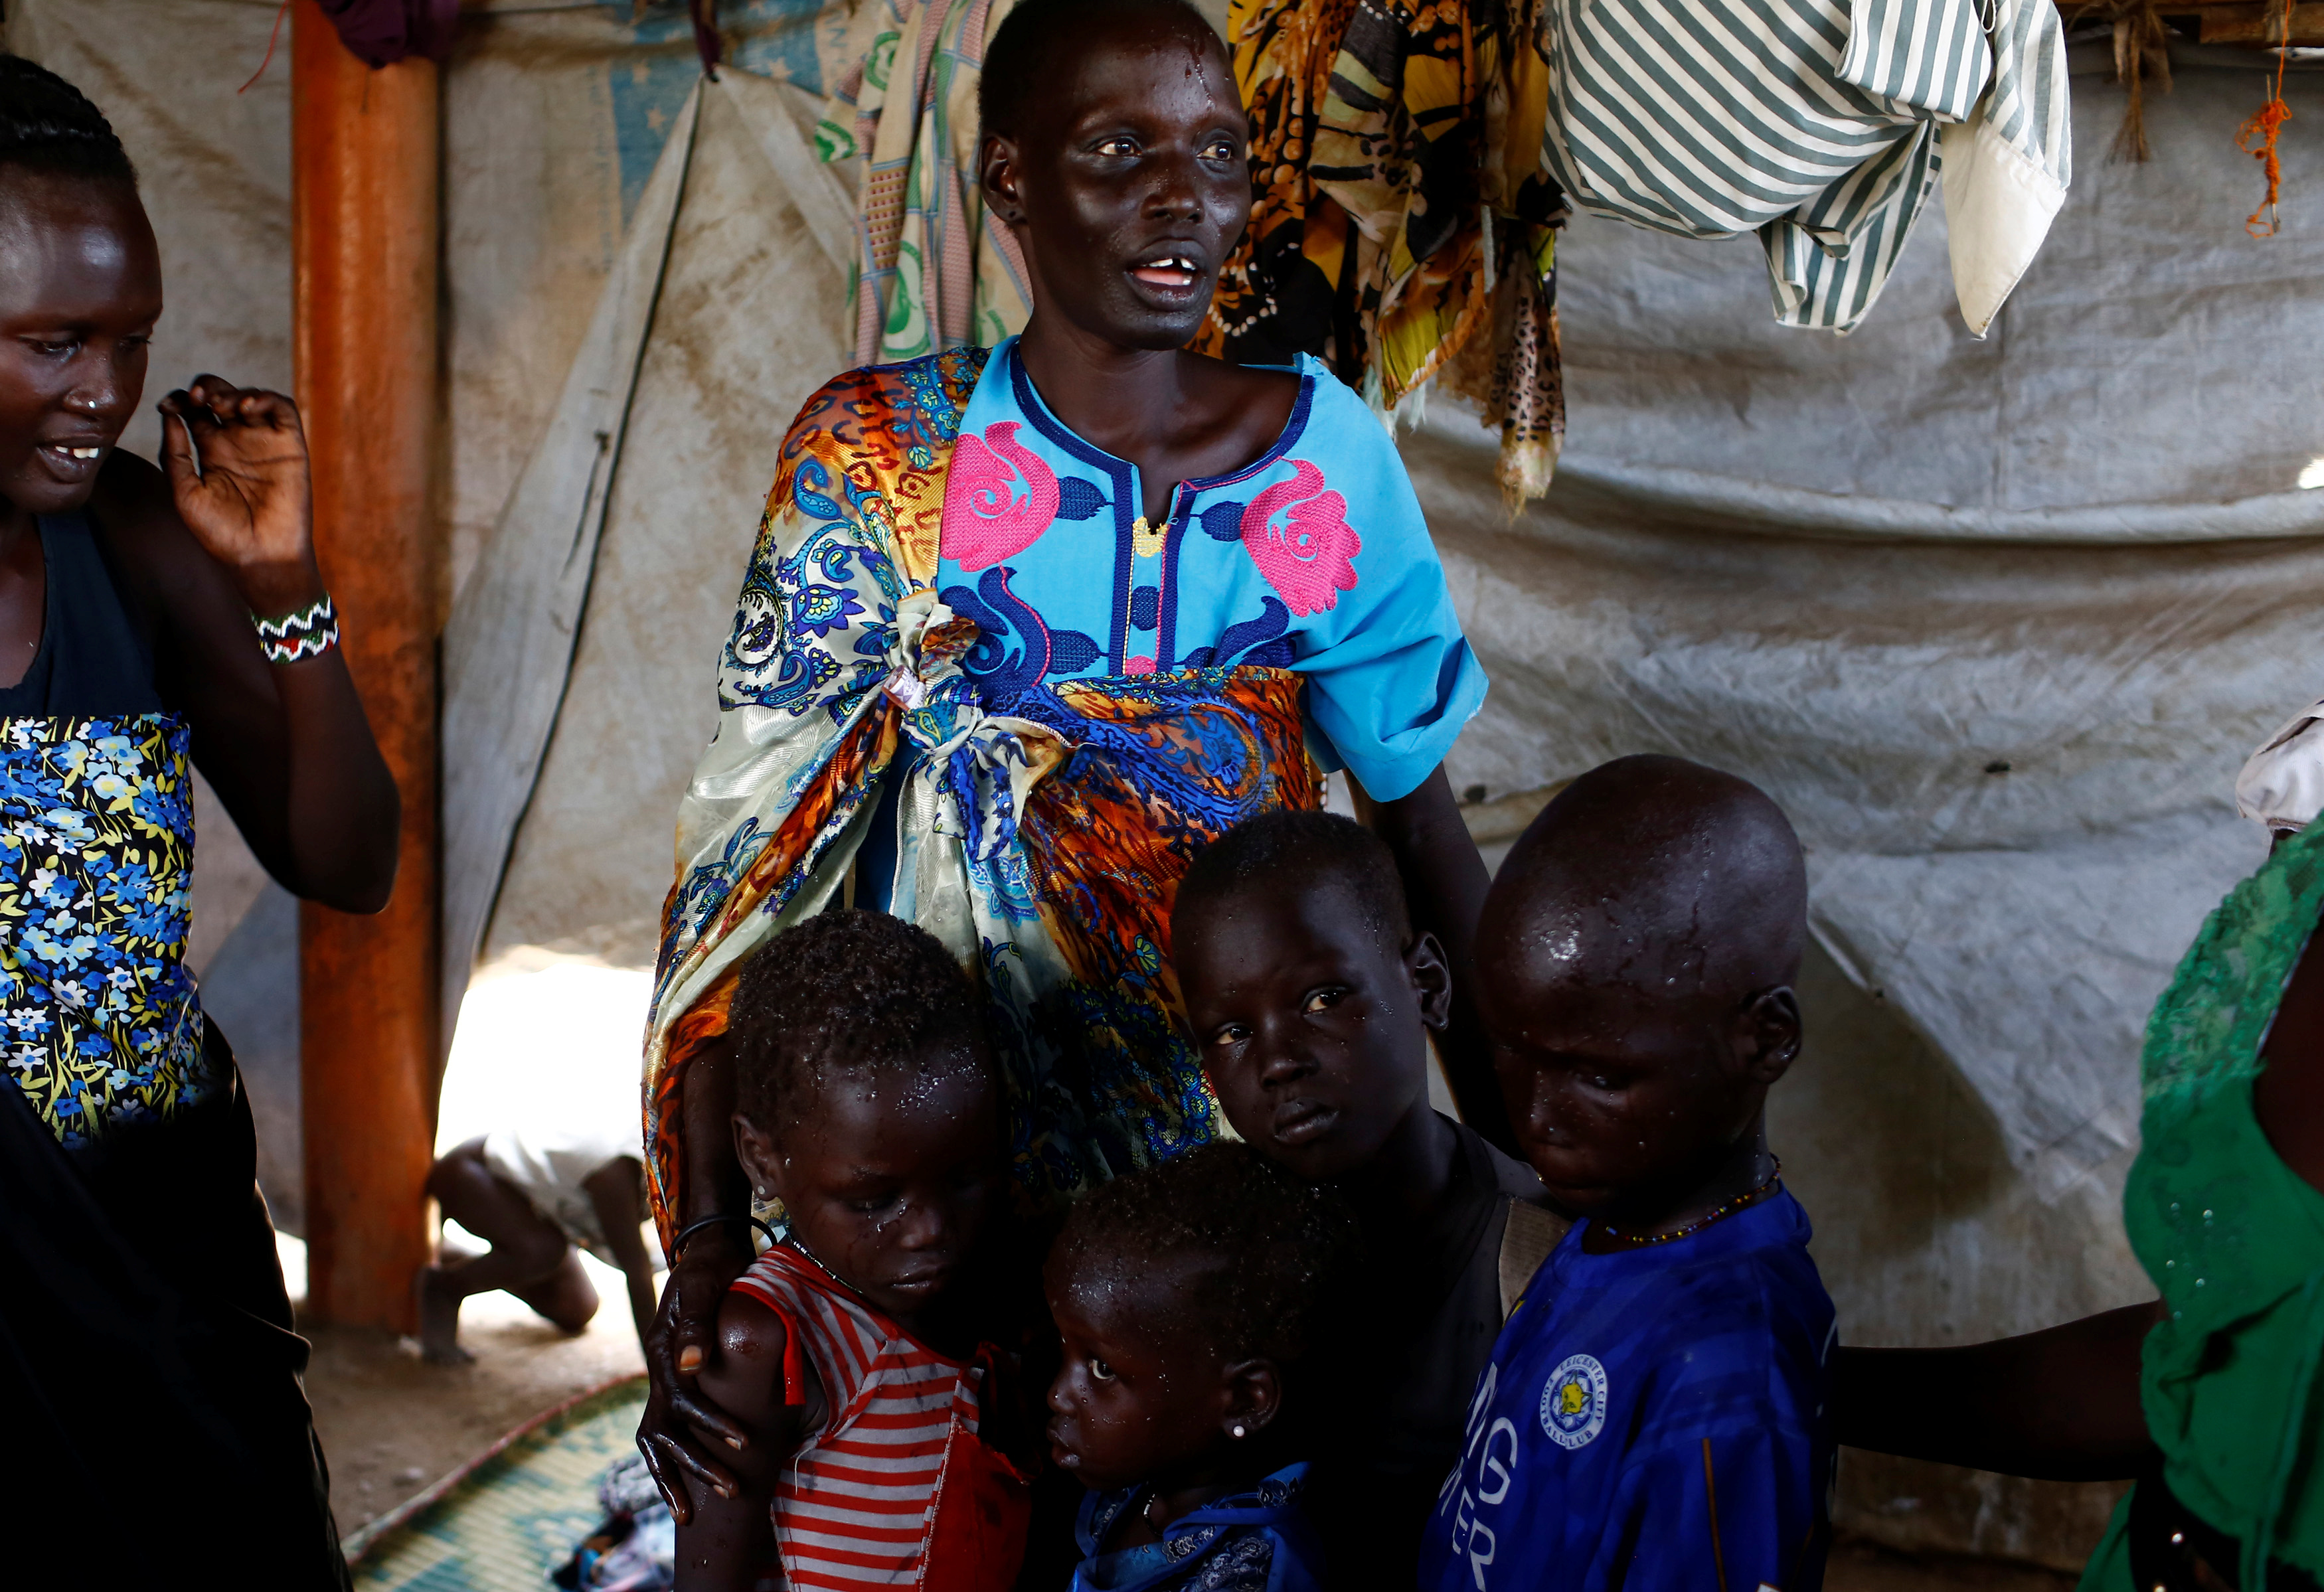 Nyagonga Machul, 38, embraces her children (from left to right) Nyameer Mario, 6, Nyawan Mario, 4, Ruai Mario, 10, and Machiey Mario, 8, in Juba, South Sudan, on Feb. 13. Photo by Siegfried Modola/Reuters